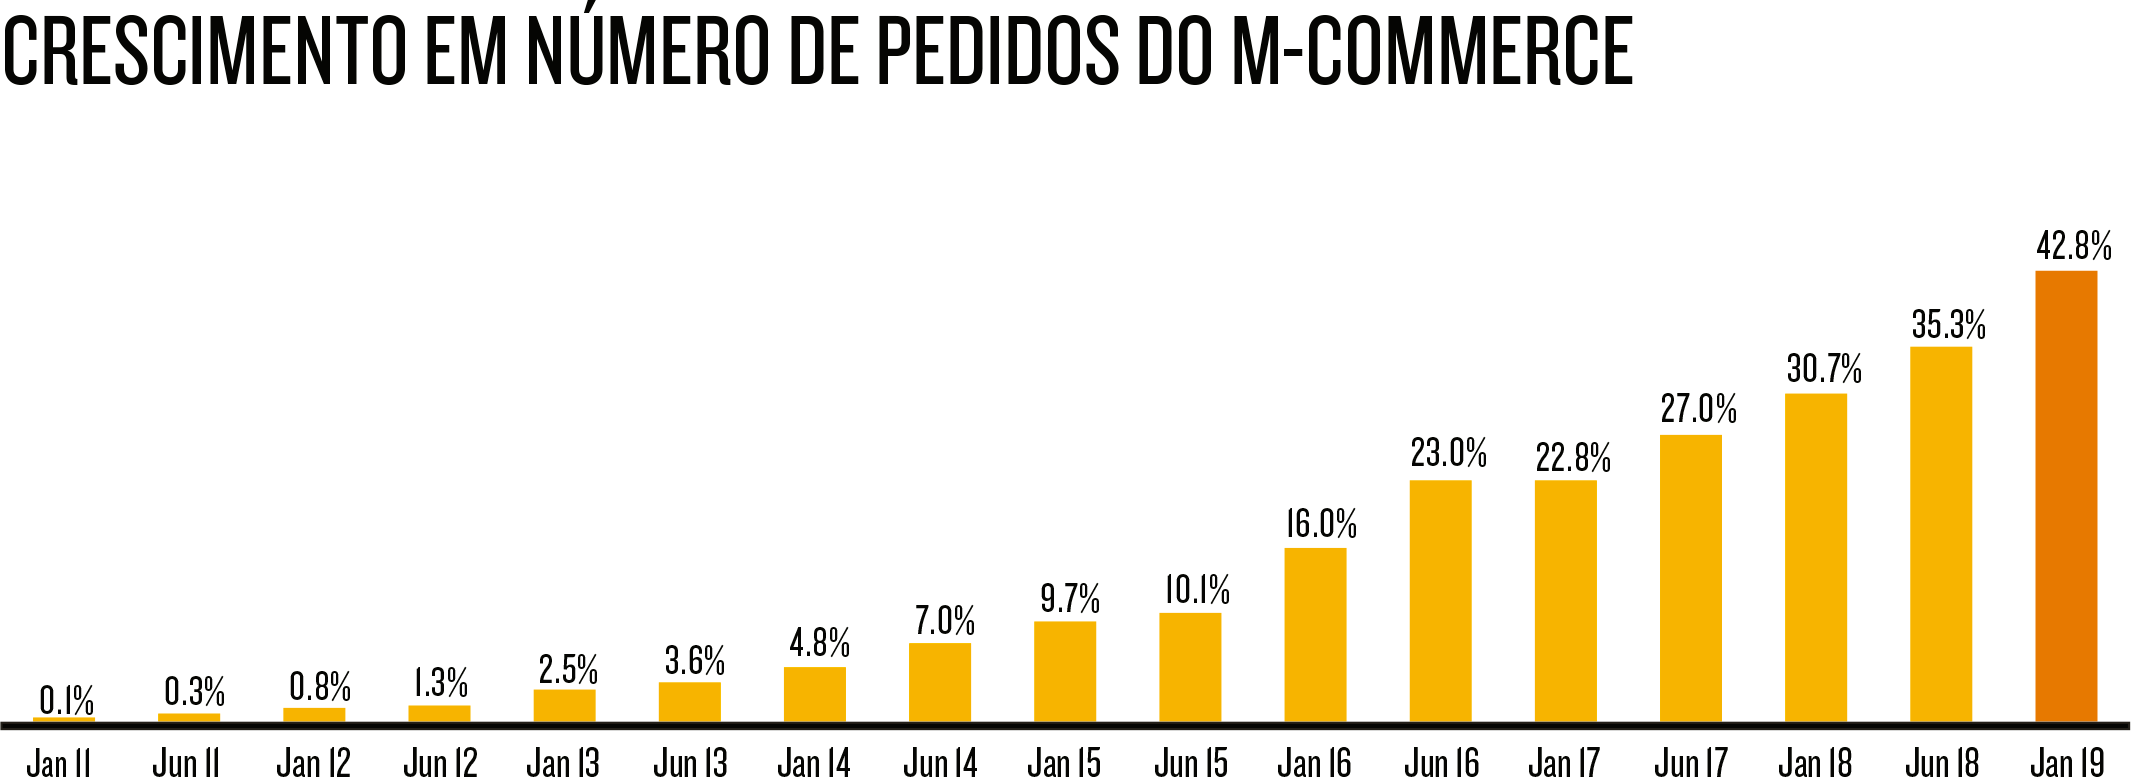 Crescimento do M-commerce